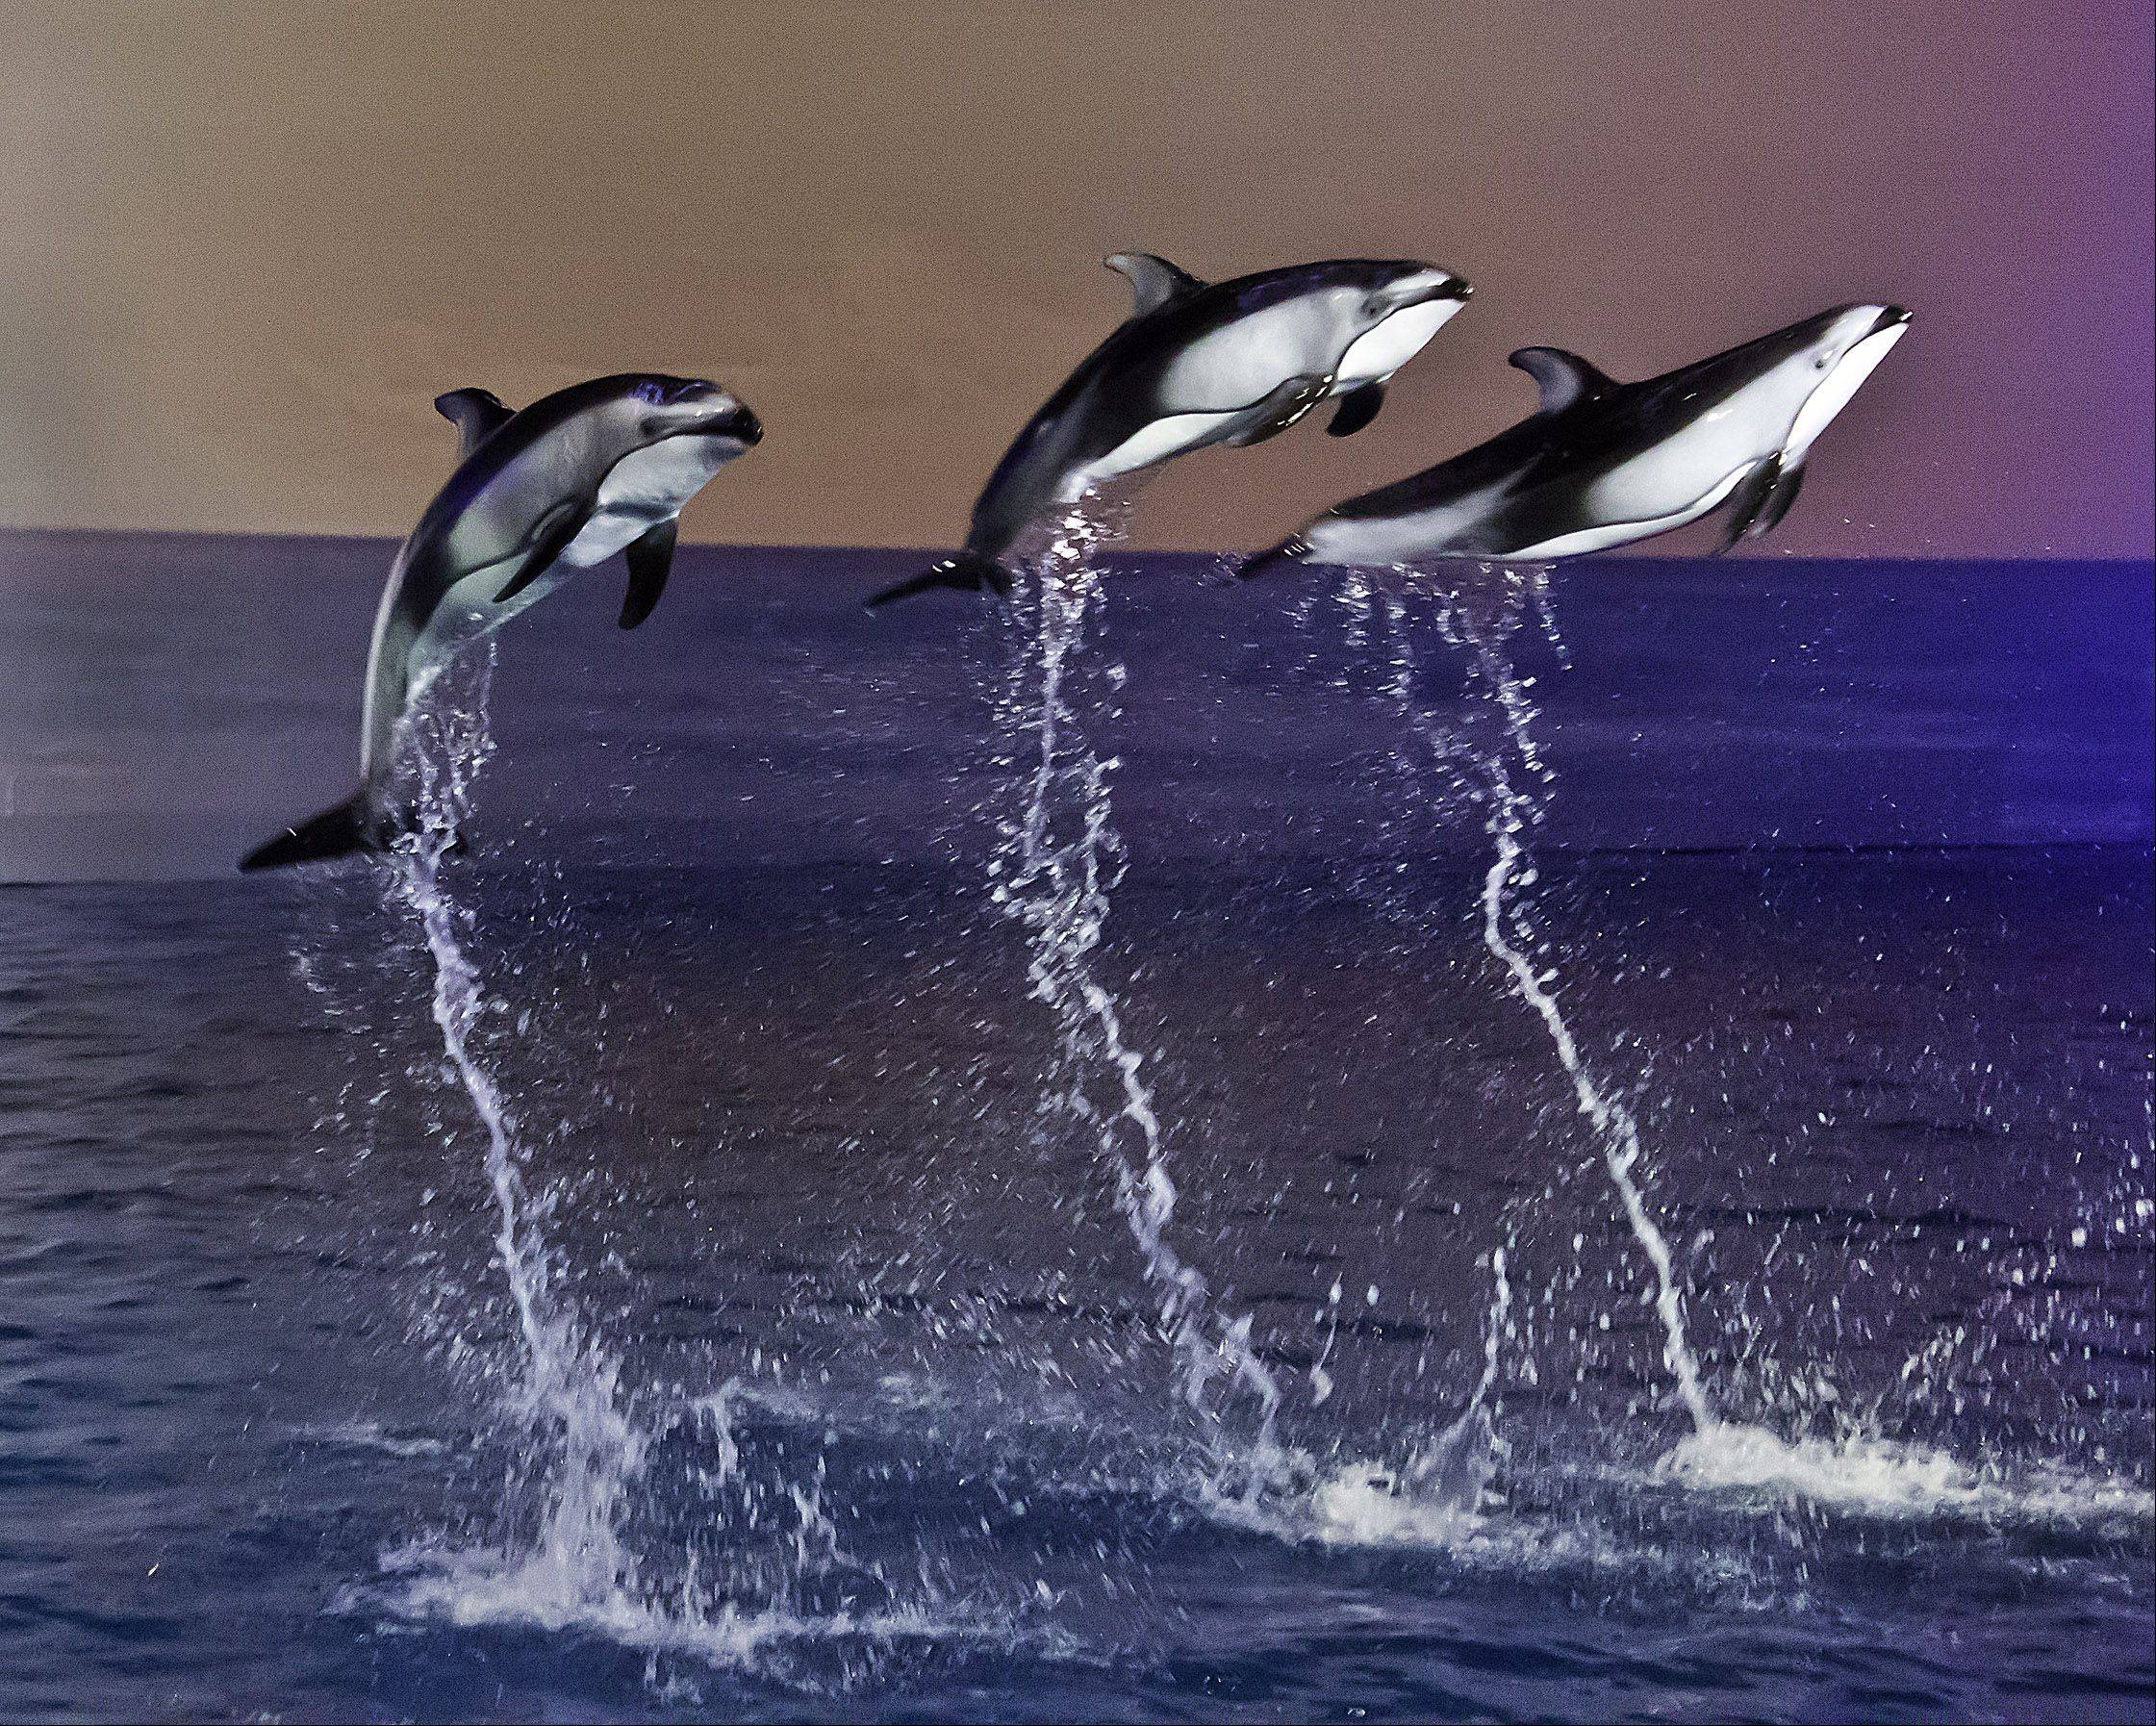 Dolphins jump in unison during a performance at the Shedd Aquarium on March 29th.